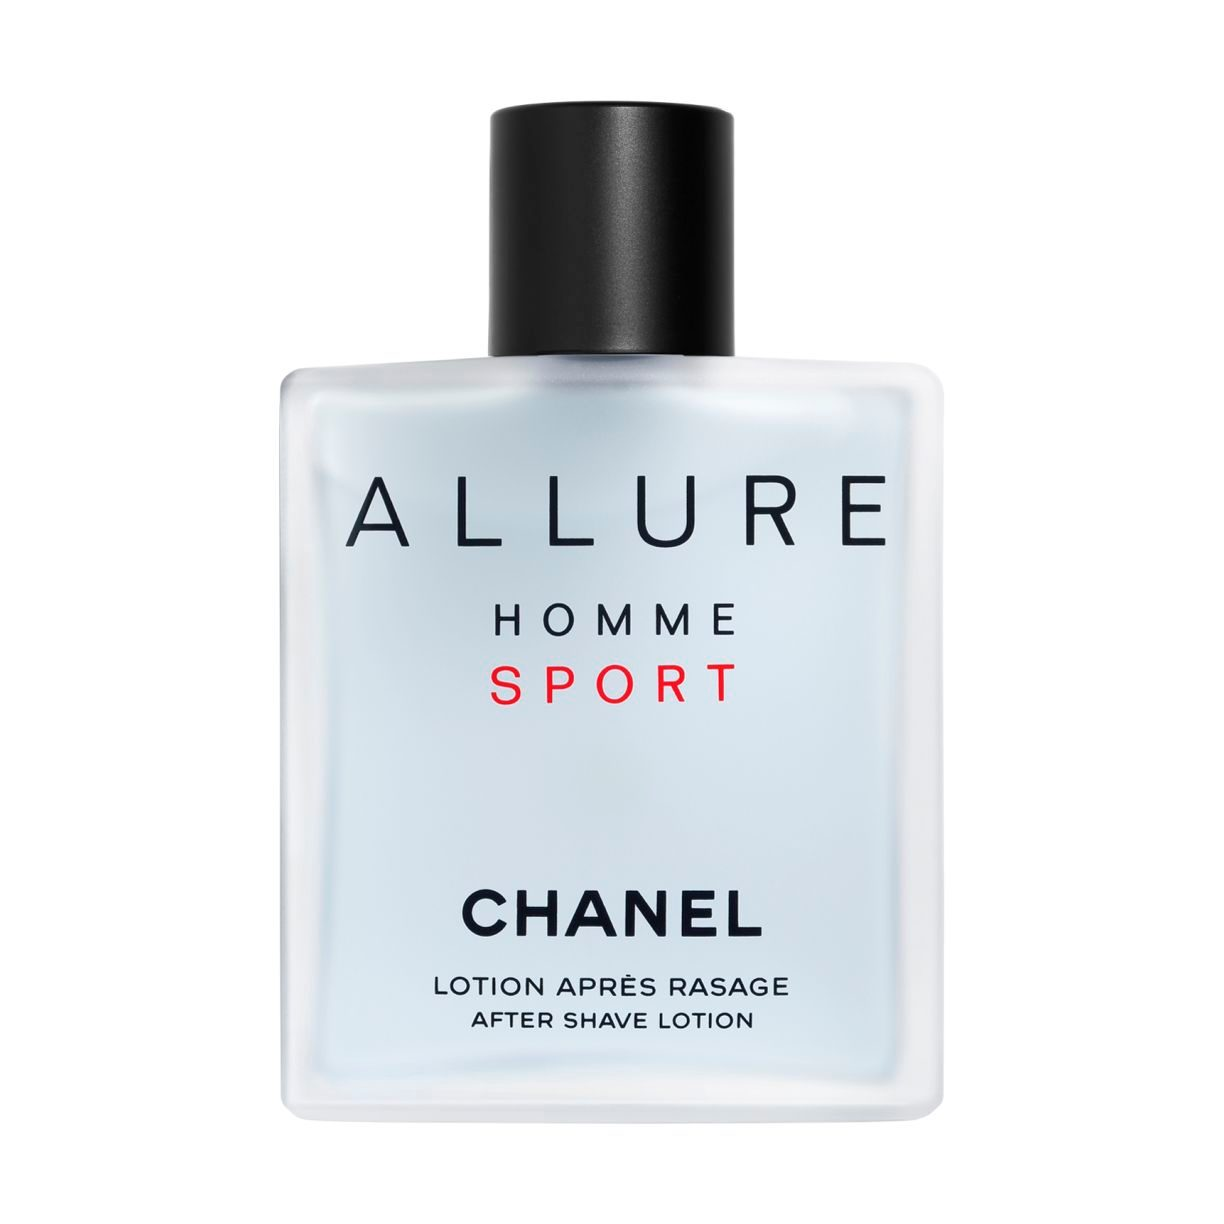 ALLURE HOMME SPORT AFTER SHAVE LOTION - โลชั่นหลังการโกนหนวด 100ml